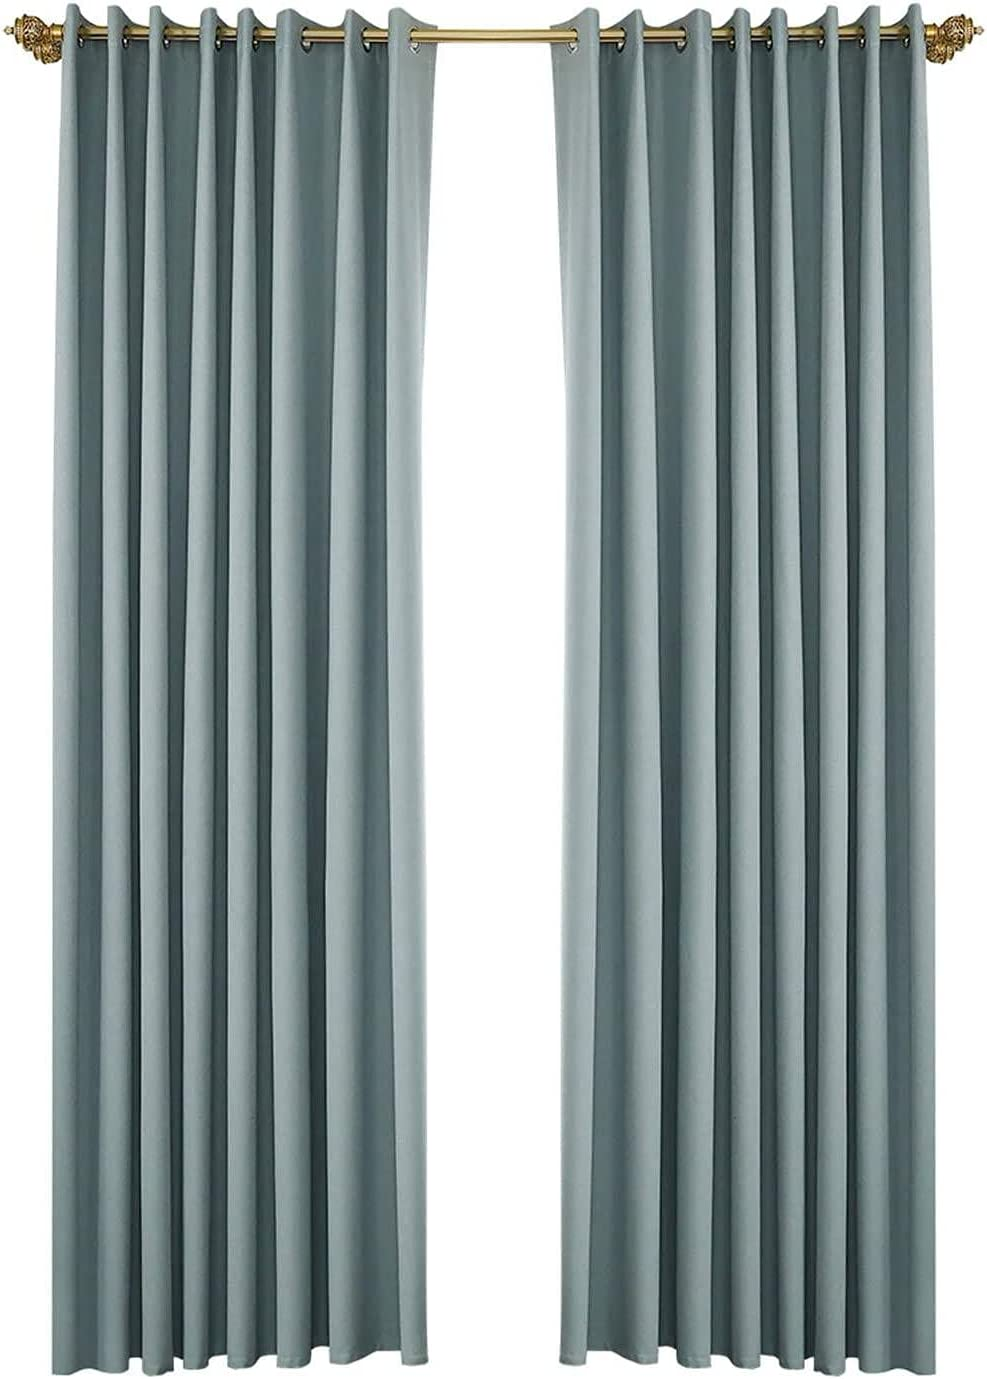 YXJD Outdoor Milwaukee Mall Curtain for Patio Beauty products Waterproof Rustproof Publ Grommet